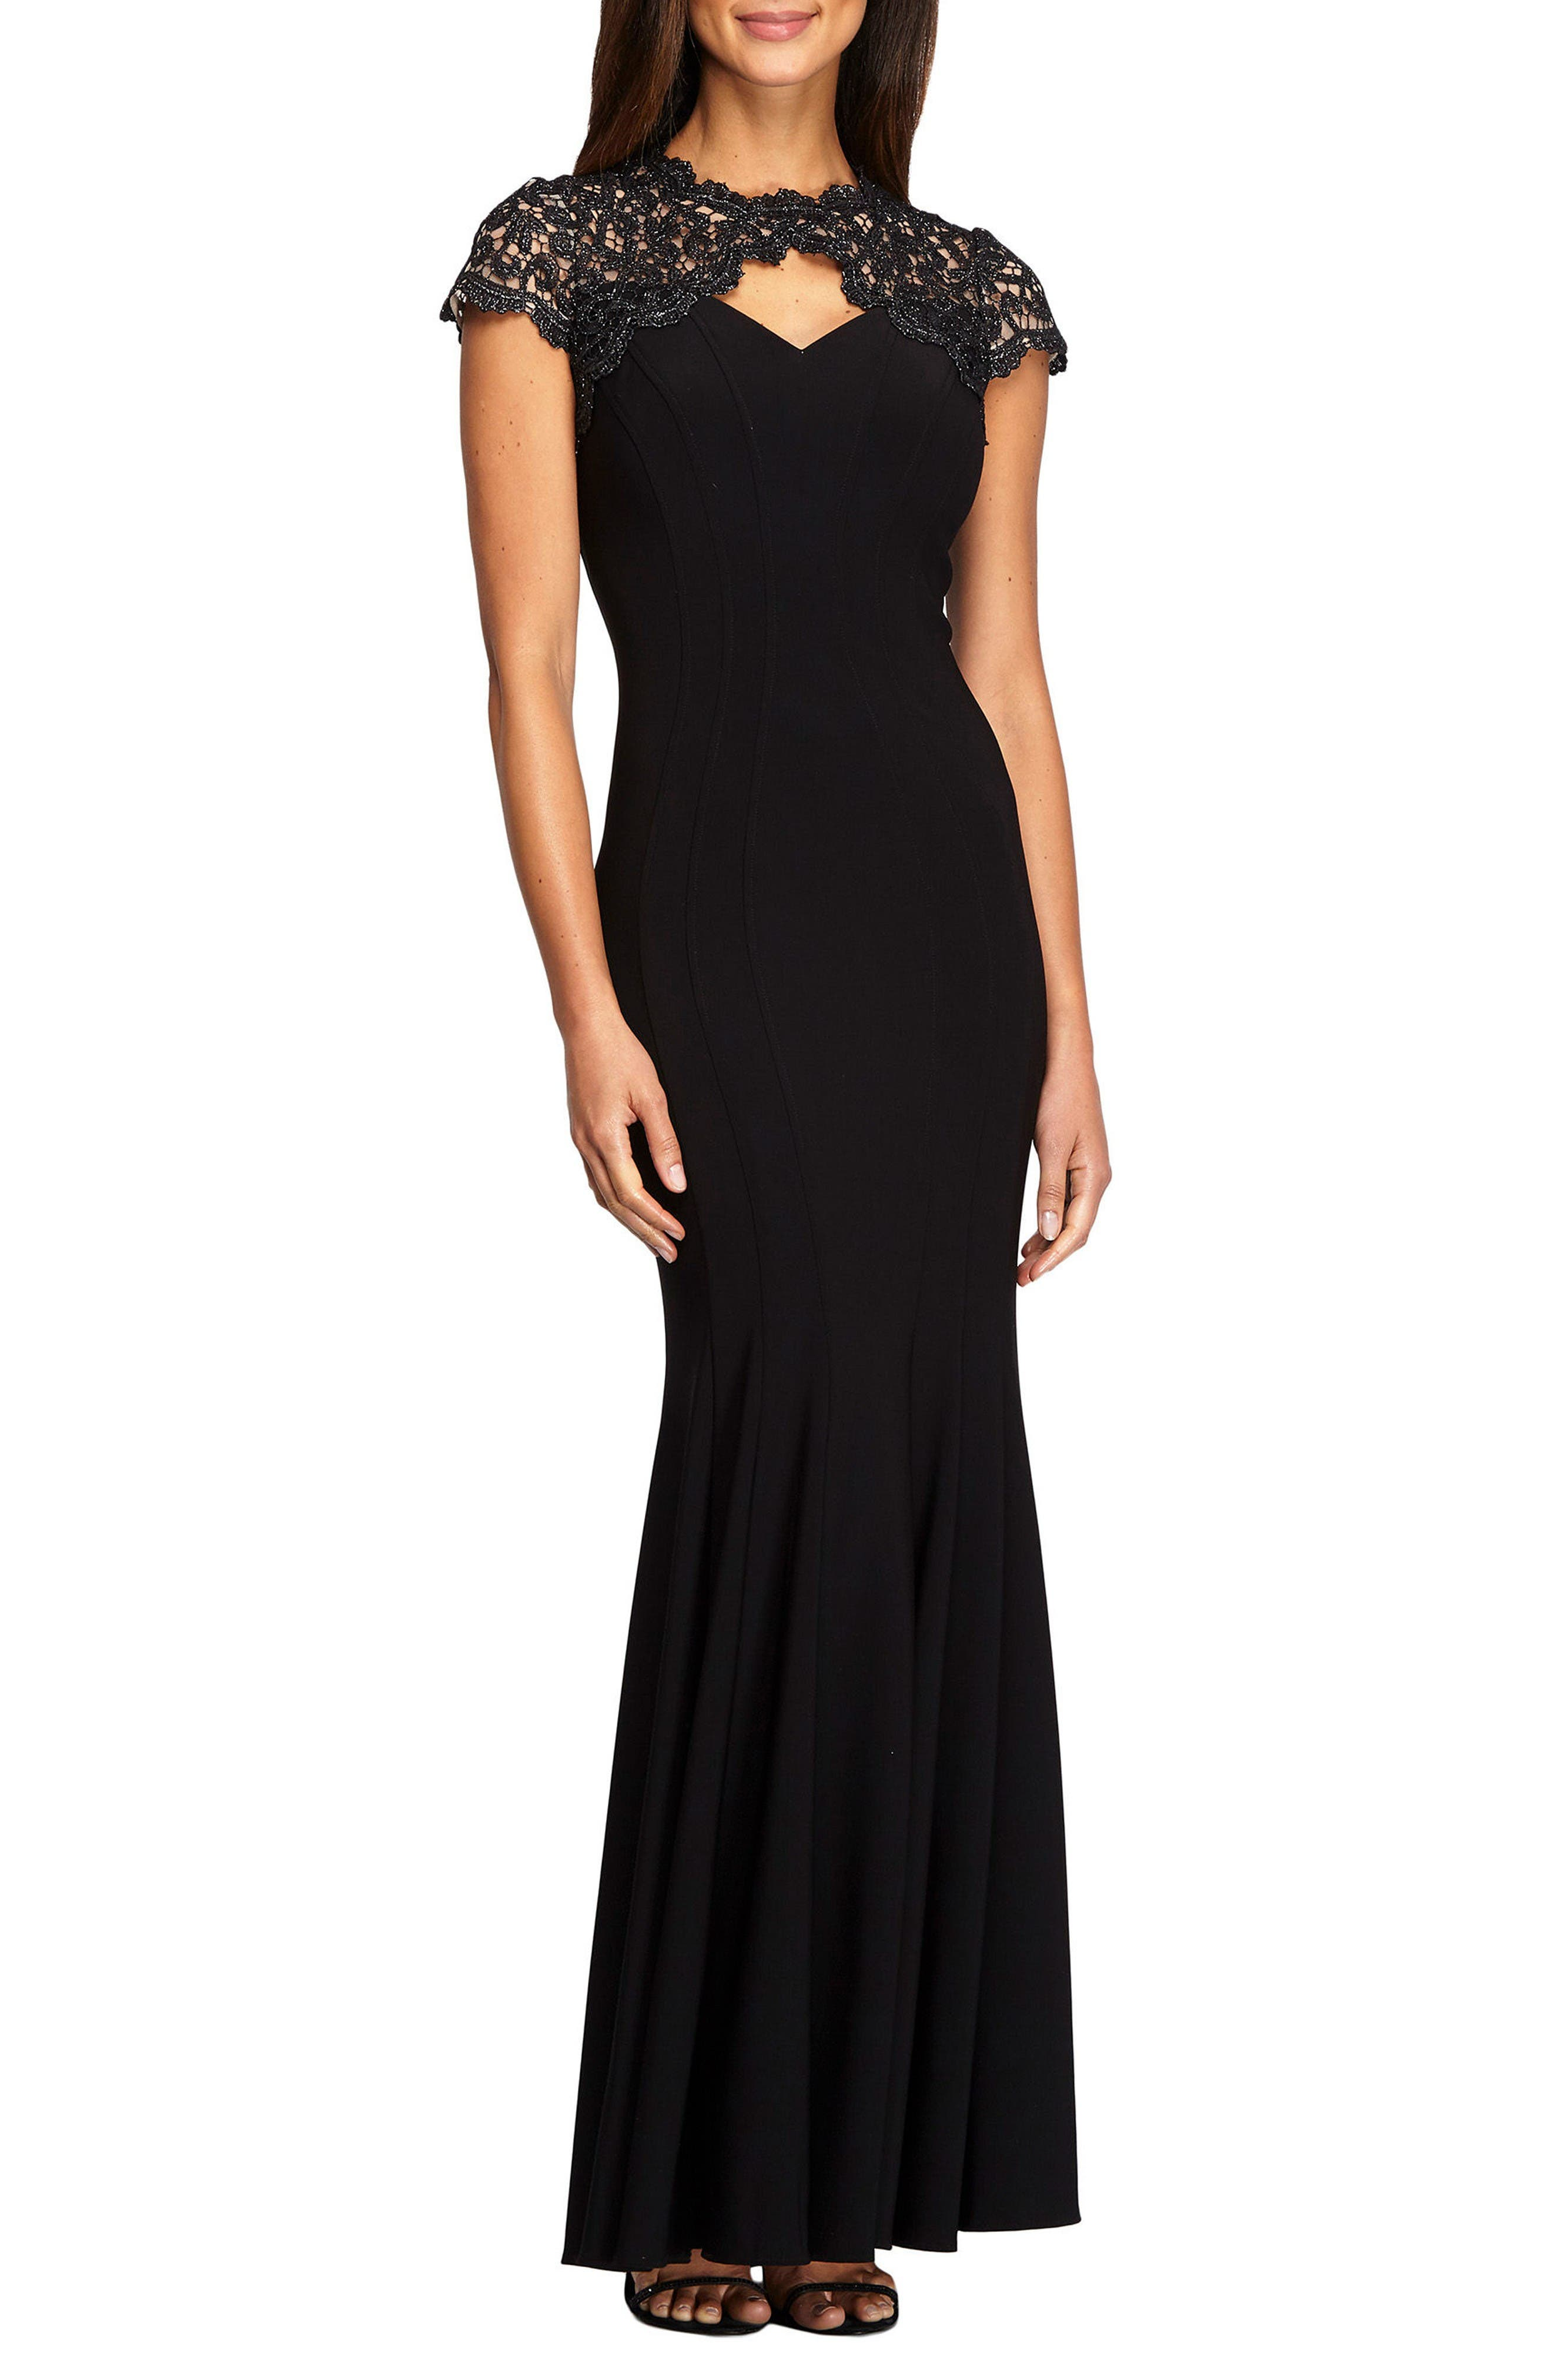 Alternate Image 1 Selected - Alex Evenings Metallic Lace & Jersey Gown